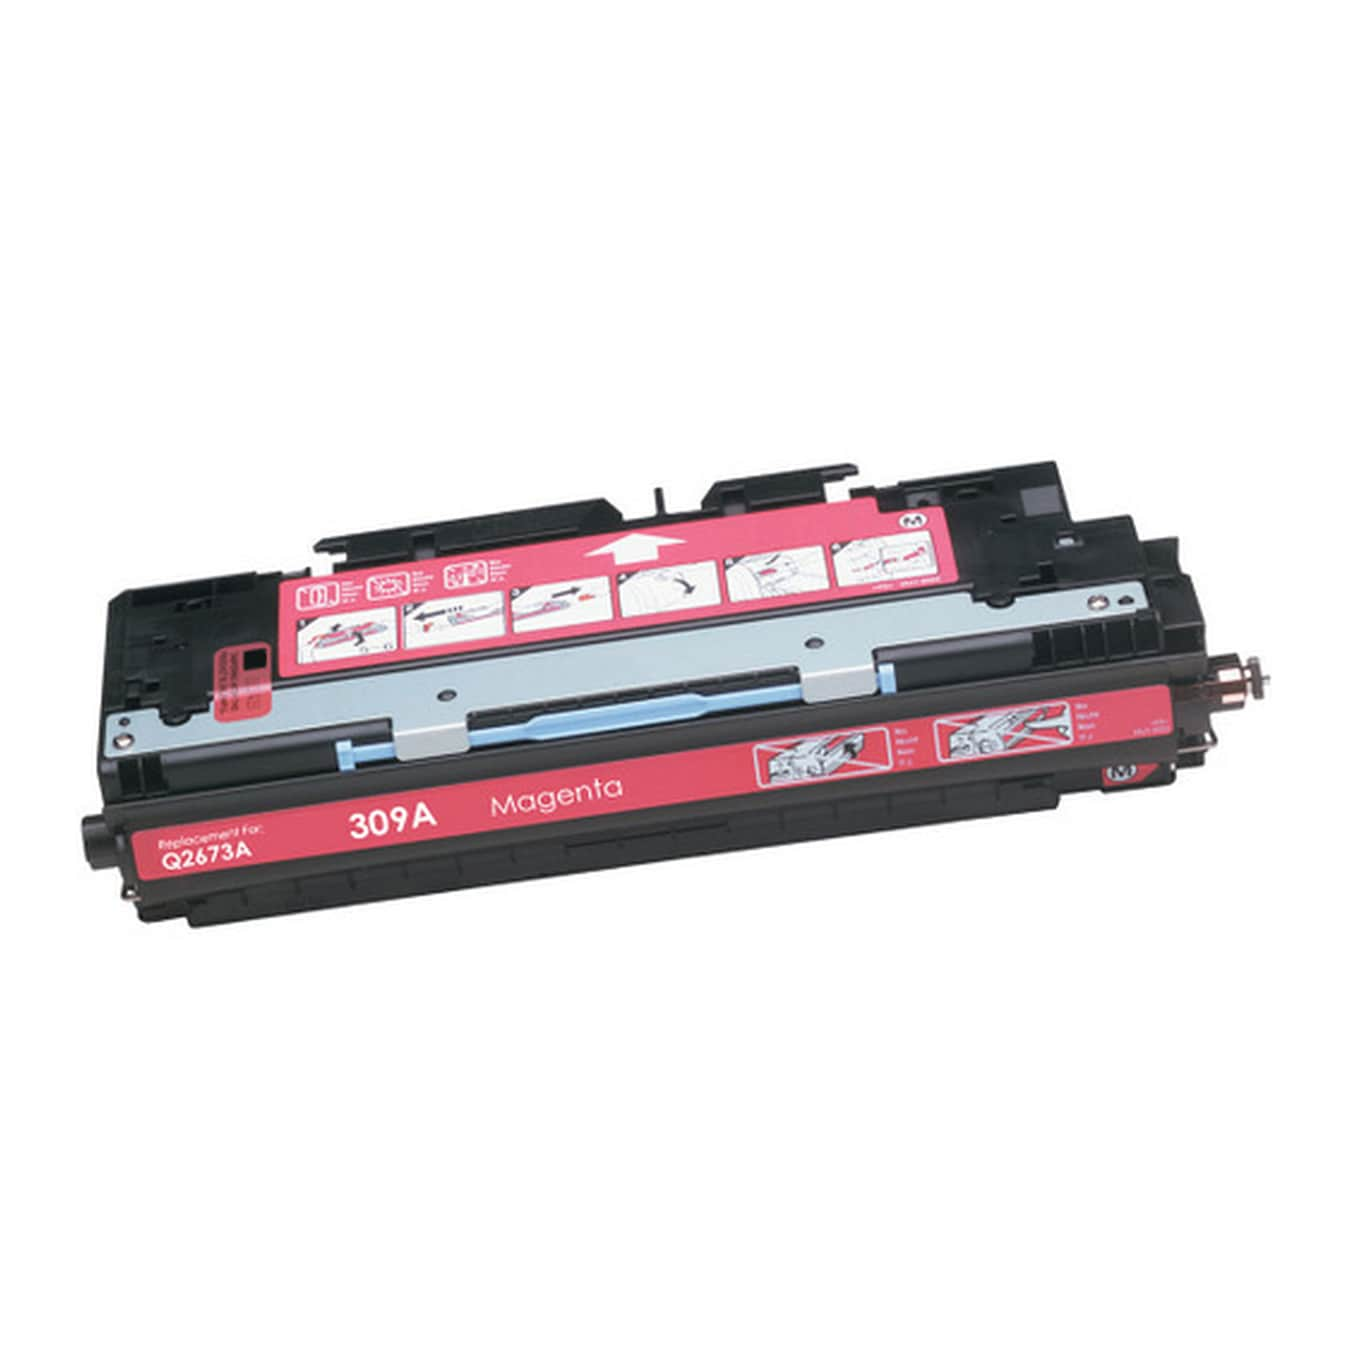 Q2673A Toner Cartridge - HP Remanufactured (Magenta)